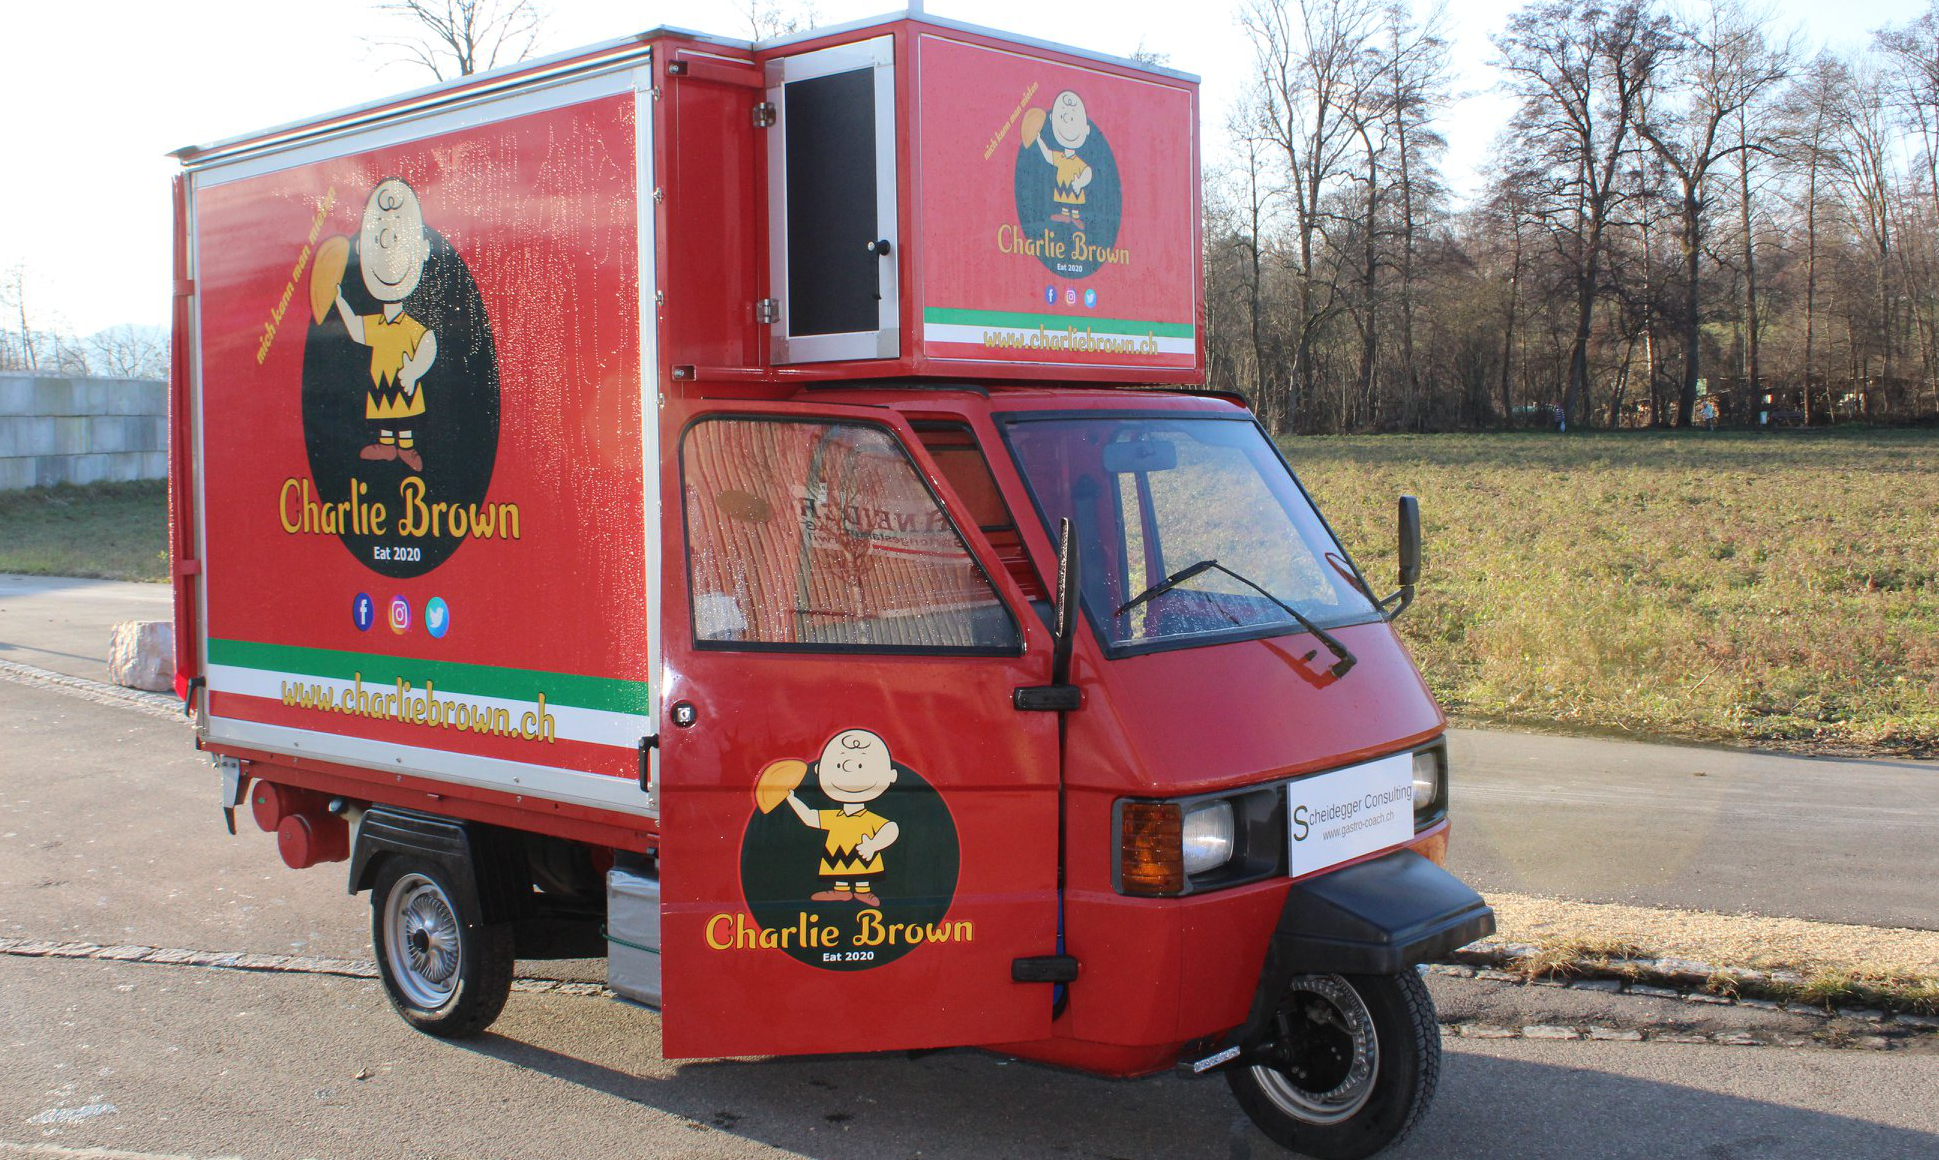 Charlie Brown Foodtruck Foodtruck Verband Schweiz